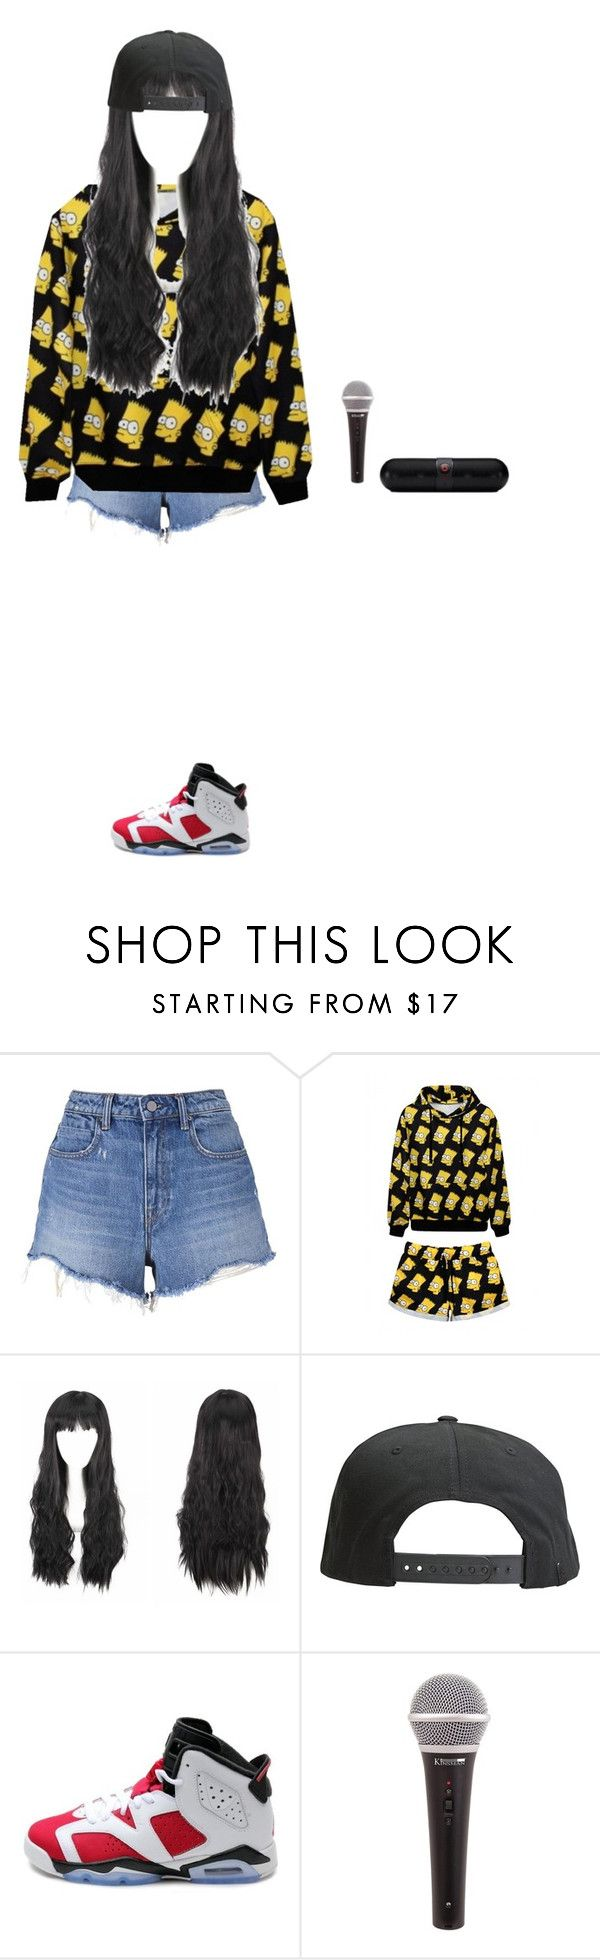 """""""Dancing~Luna"""" by luna-from-dna ❤ liked on Polyvore featuring T By Alexander Wang, WithChic, Tavik Swimwear, NIKE and Beats by Dr. Dre"""